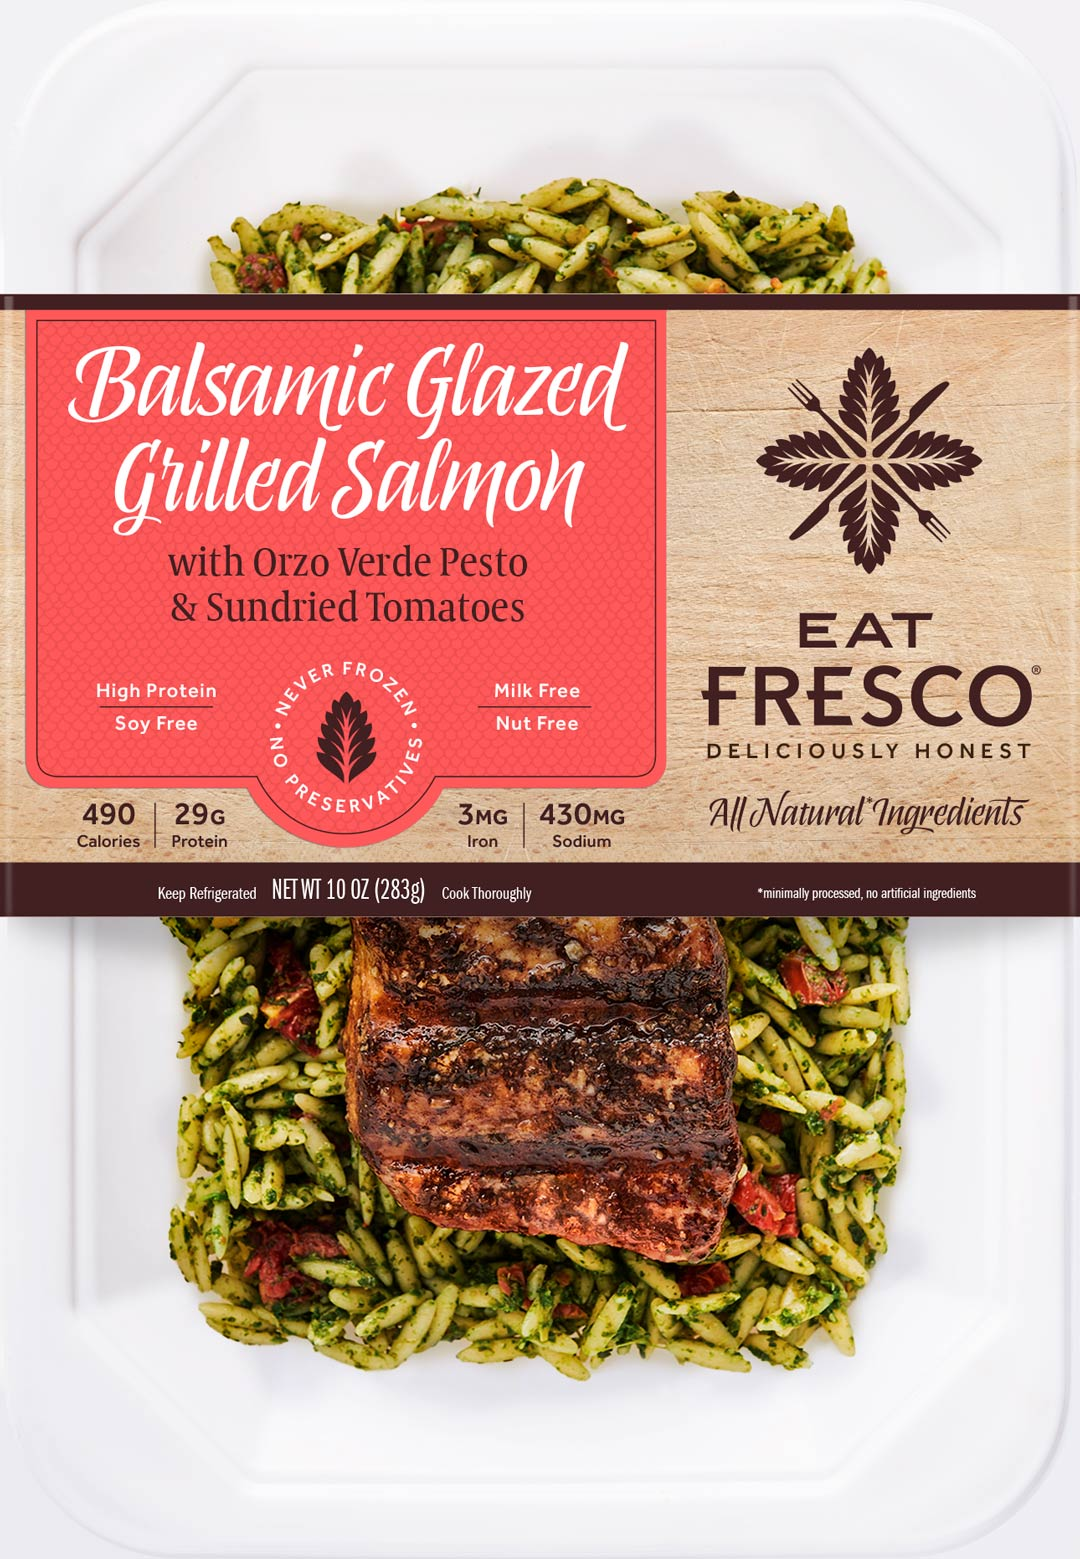 Eat Fresco - Entree - Dinner - Balsamic Glazed Grilled Salmon